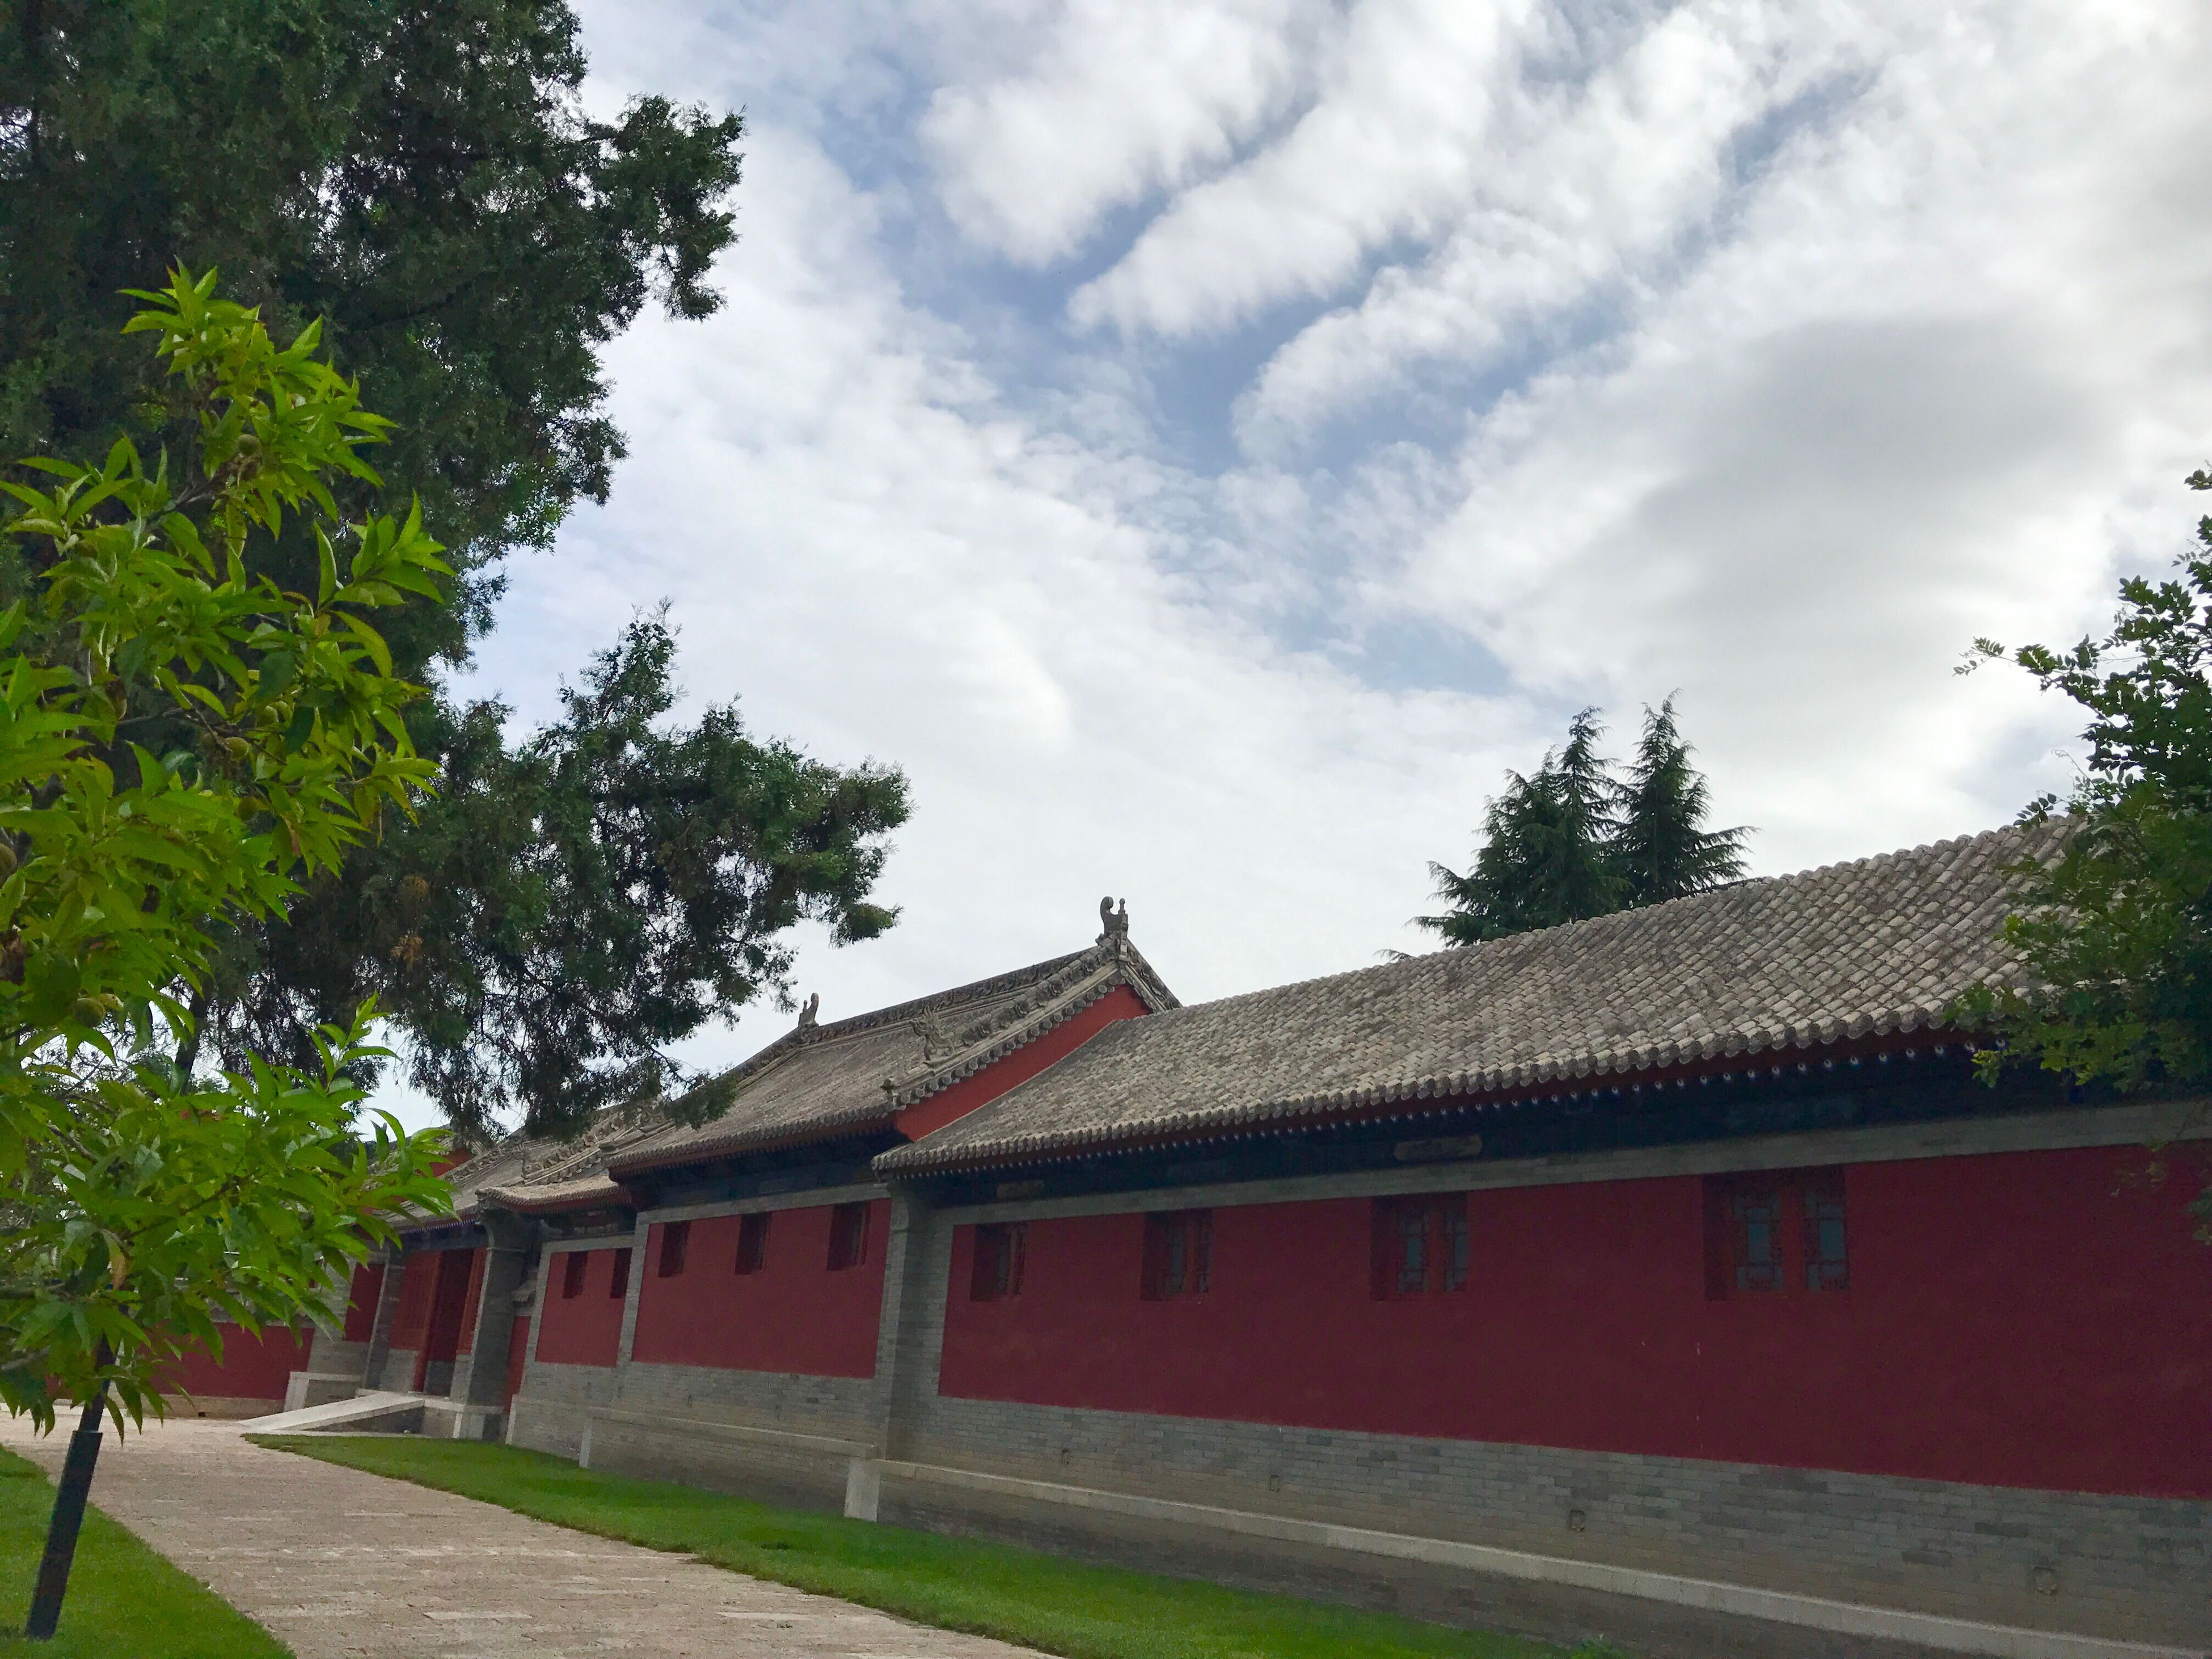 built structure, sky, cloud - sky, architecture, building exterior, tree, house, day, outdoors, no people, red, roof, nature